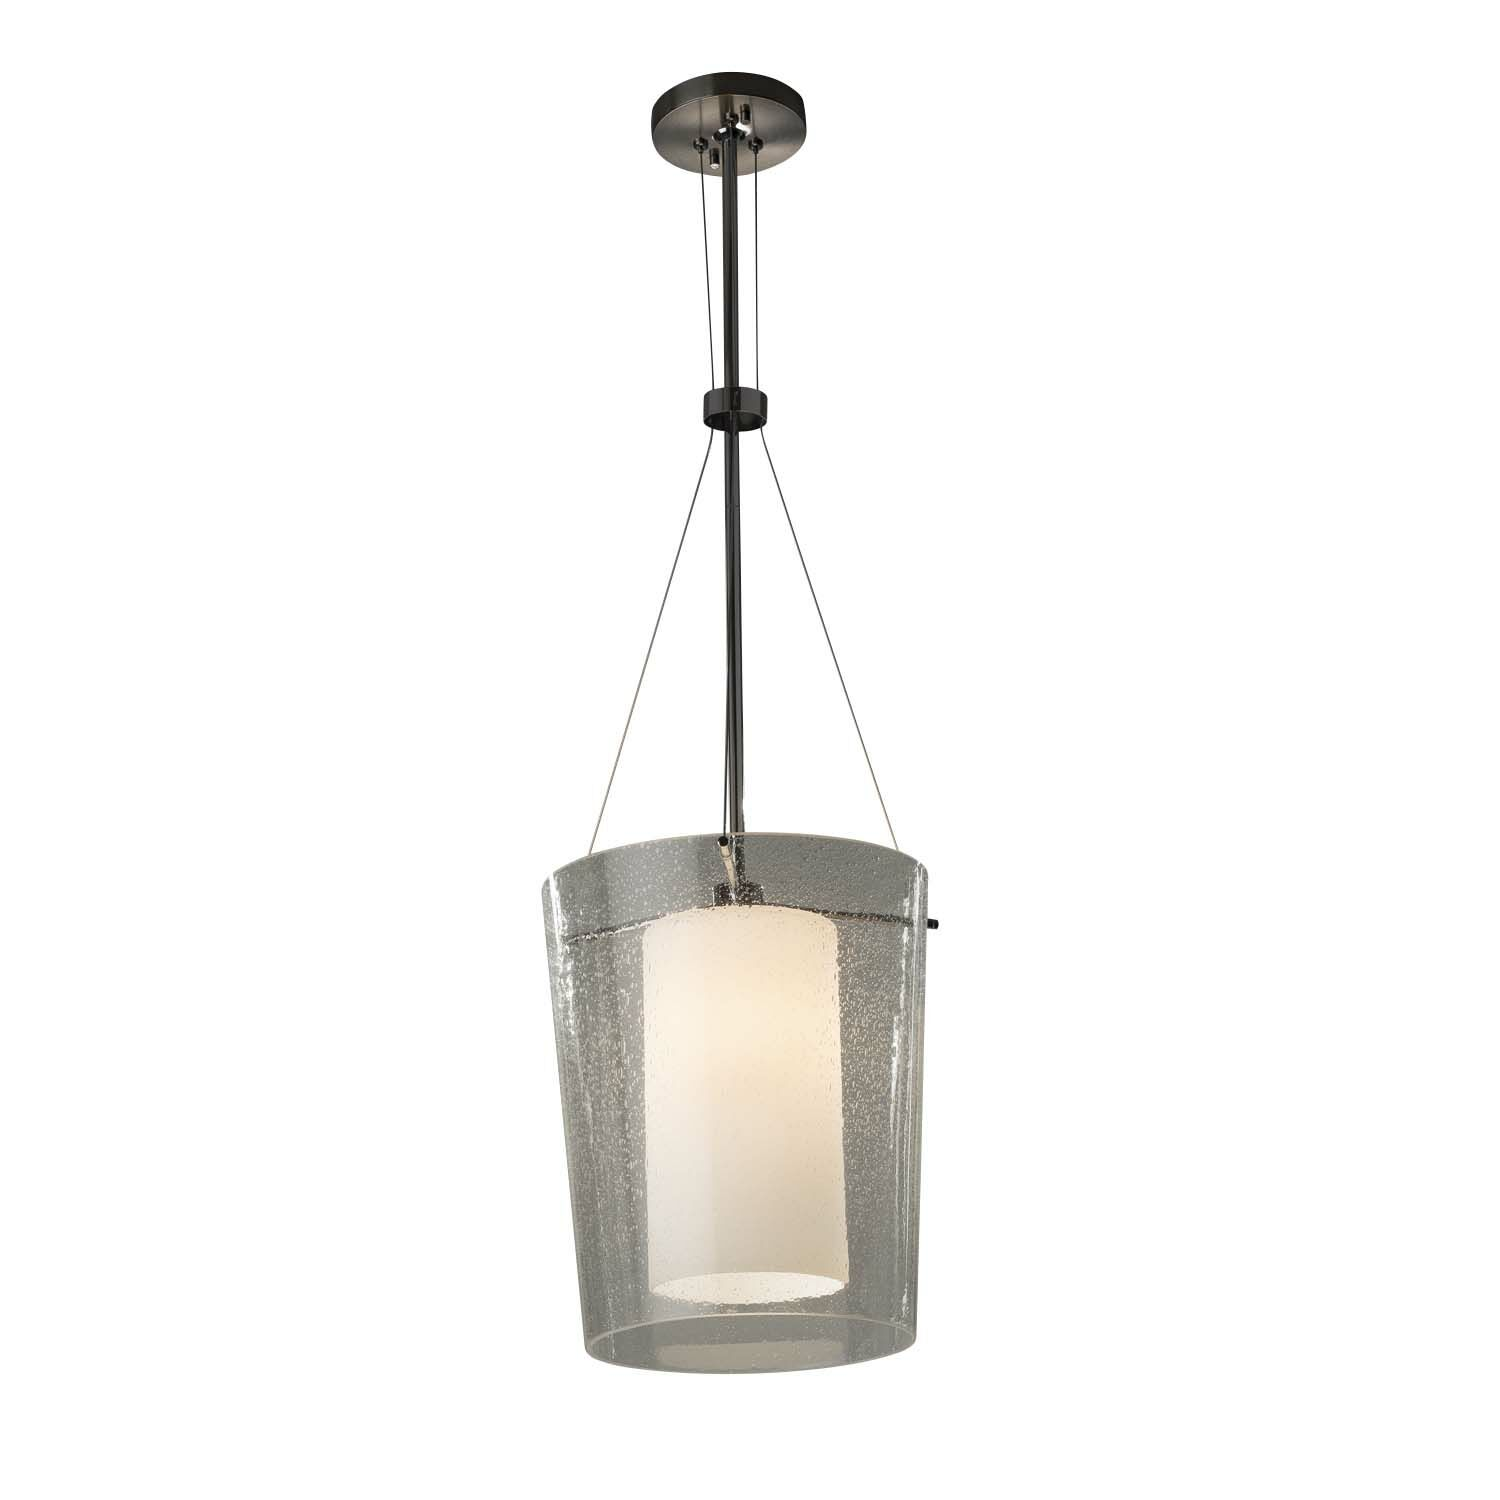 Luzerne 1-Light Drum Pendant Finish: Polished Chrome, Shade Color: Mercury Glass, Bulb Type: Incandescent